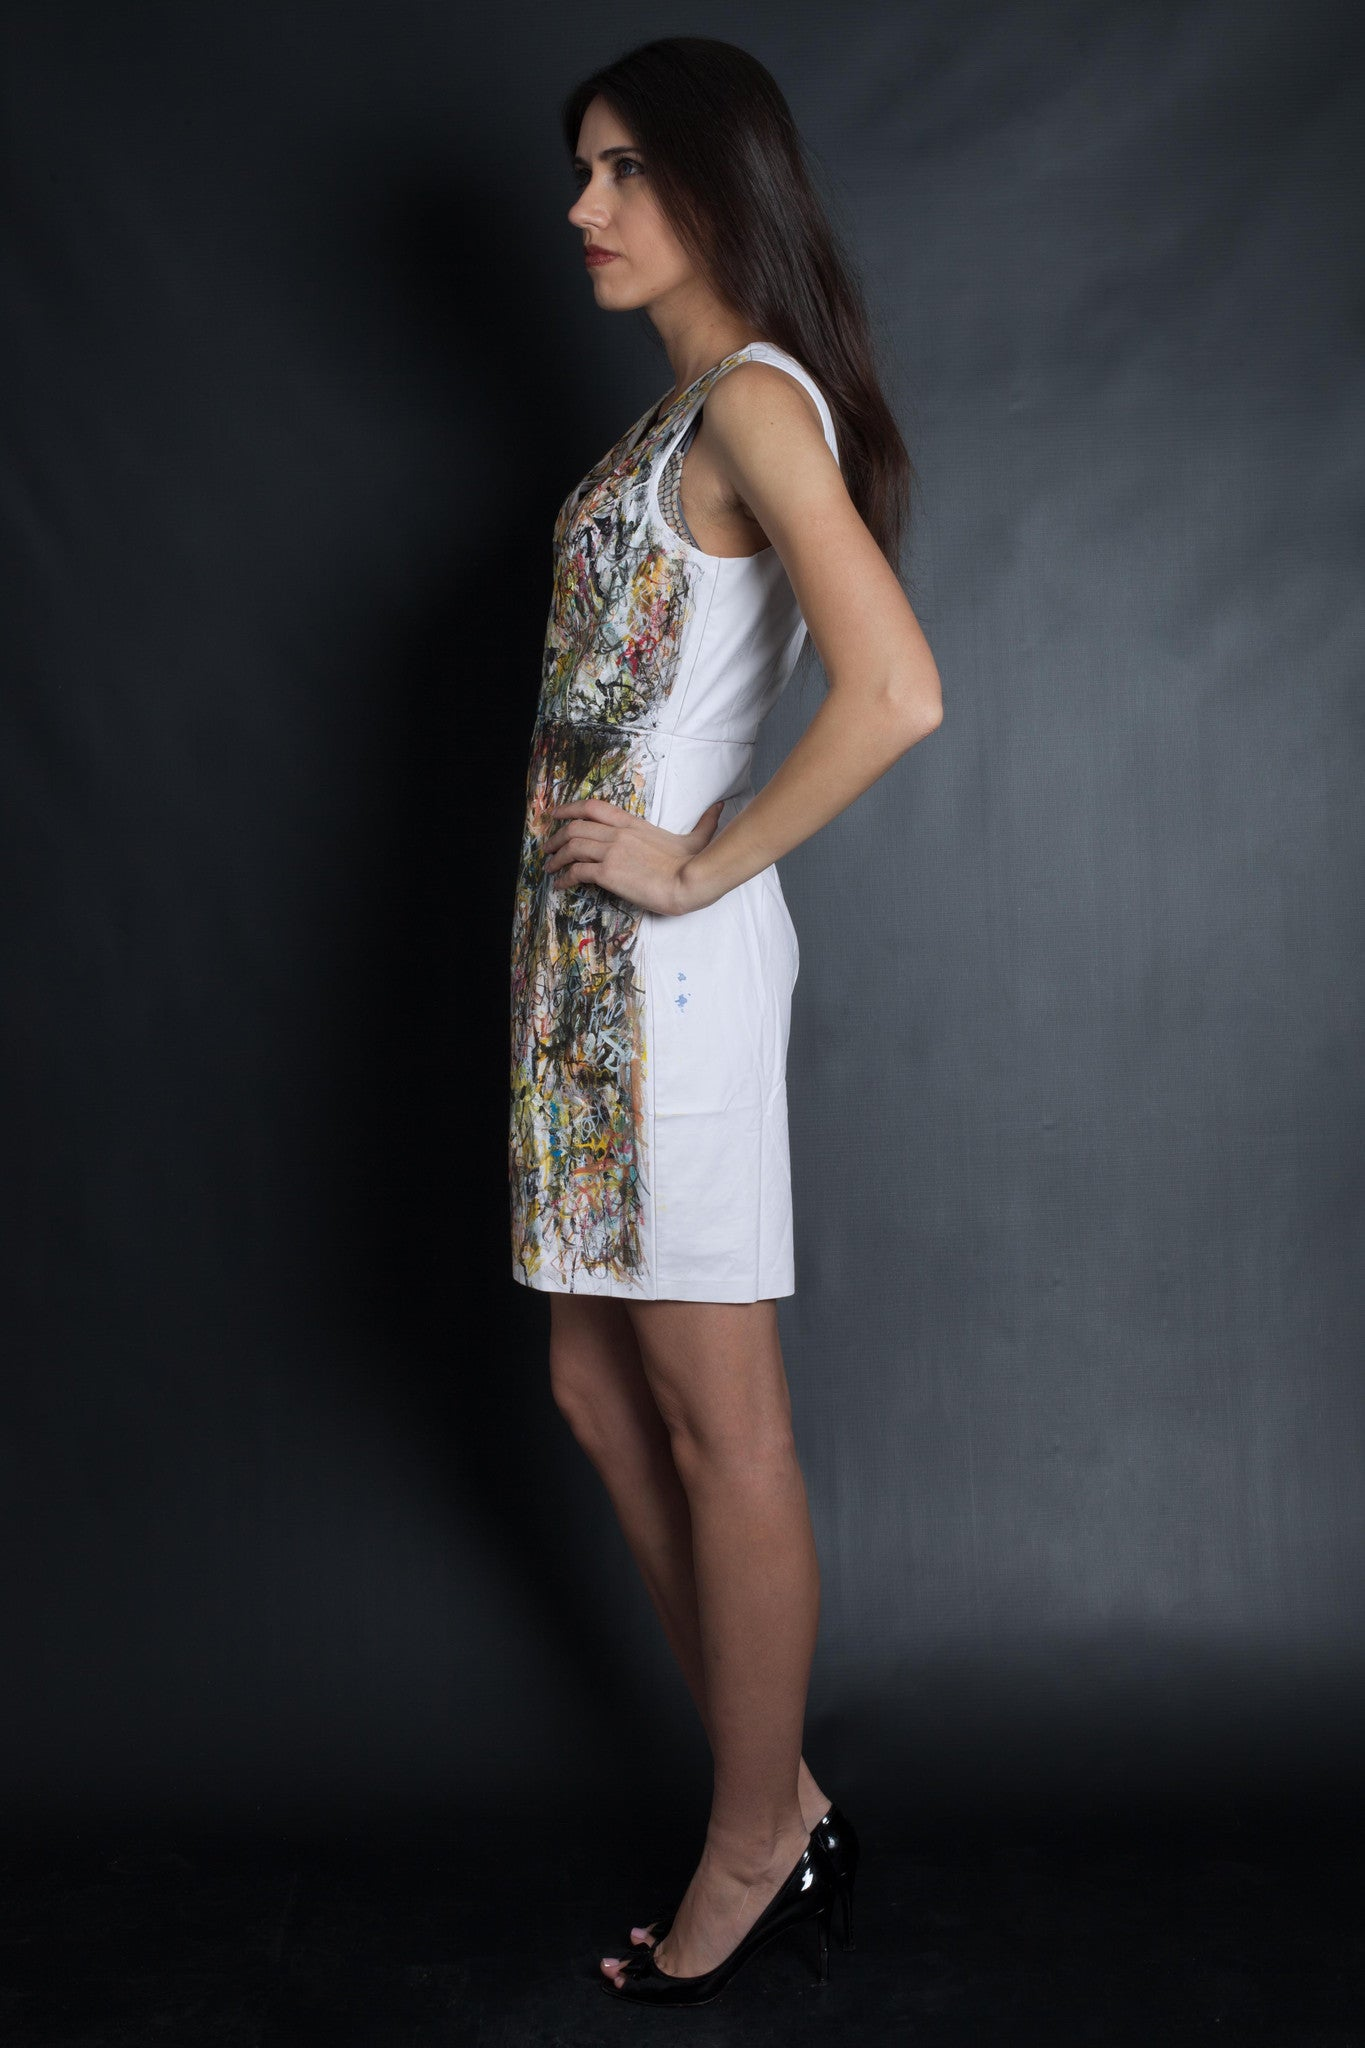 Graffiti Print Faux Leather Dress (White)